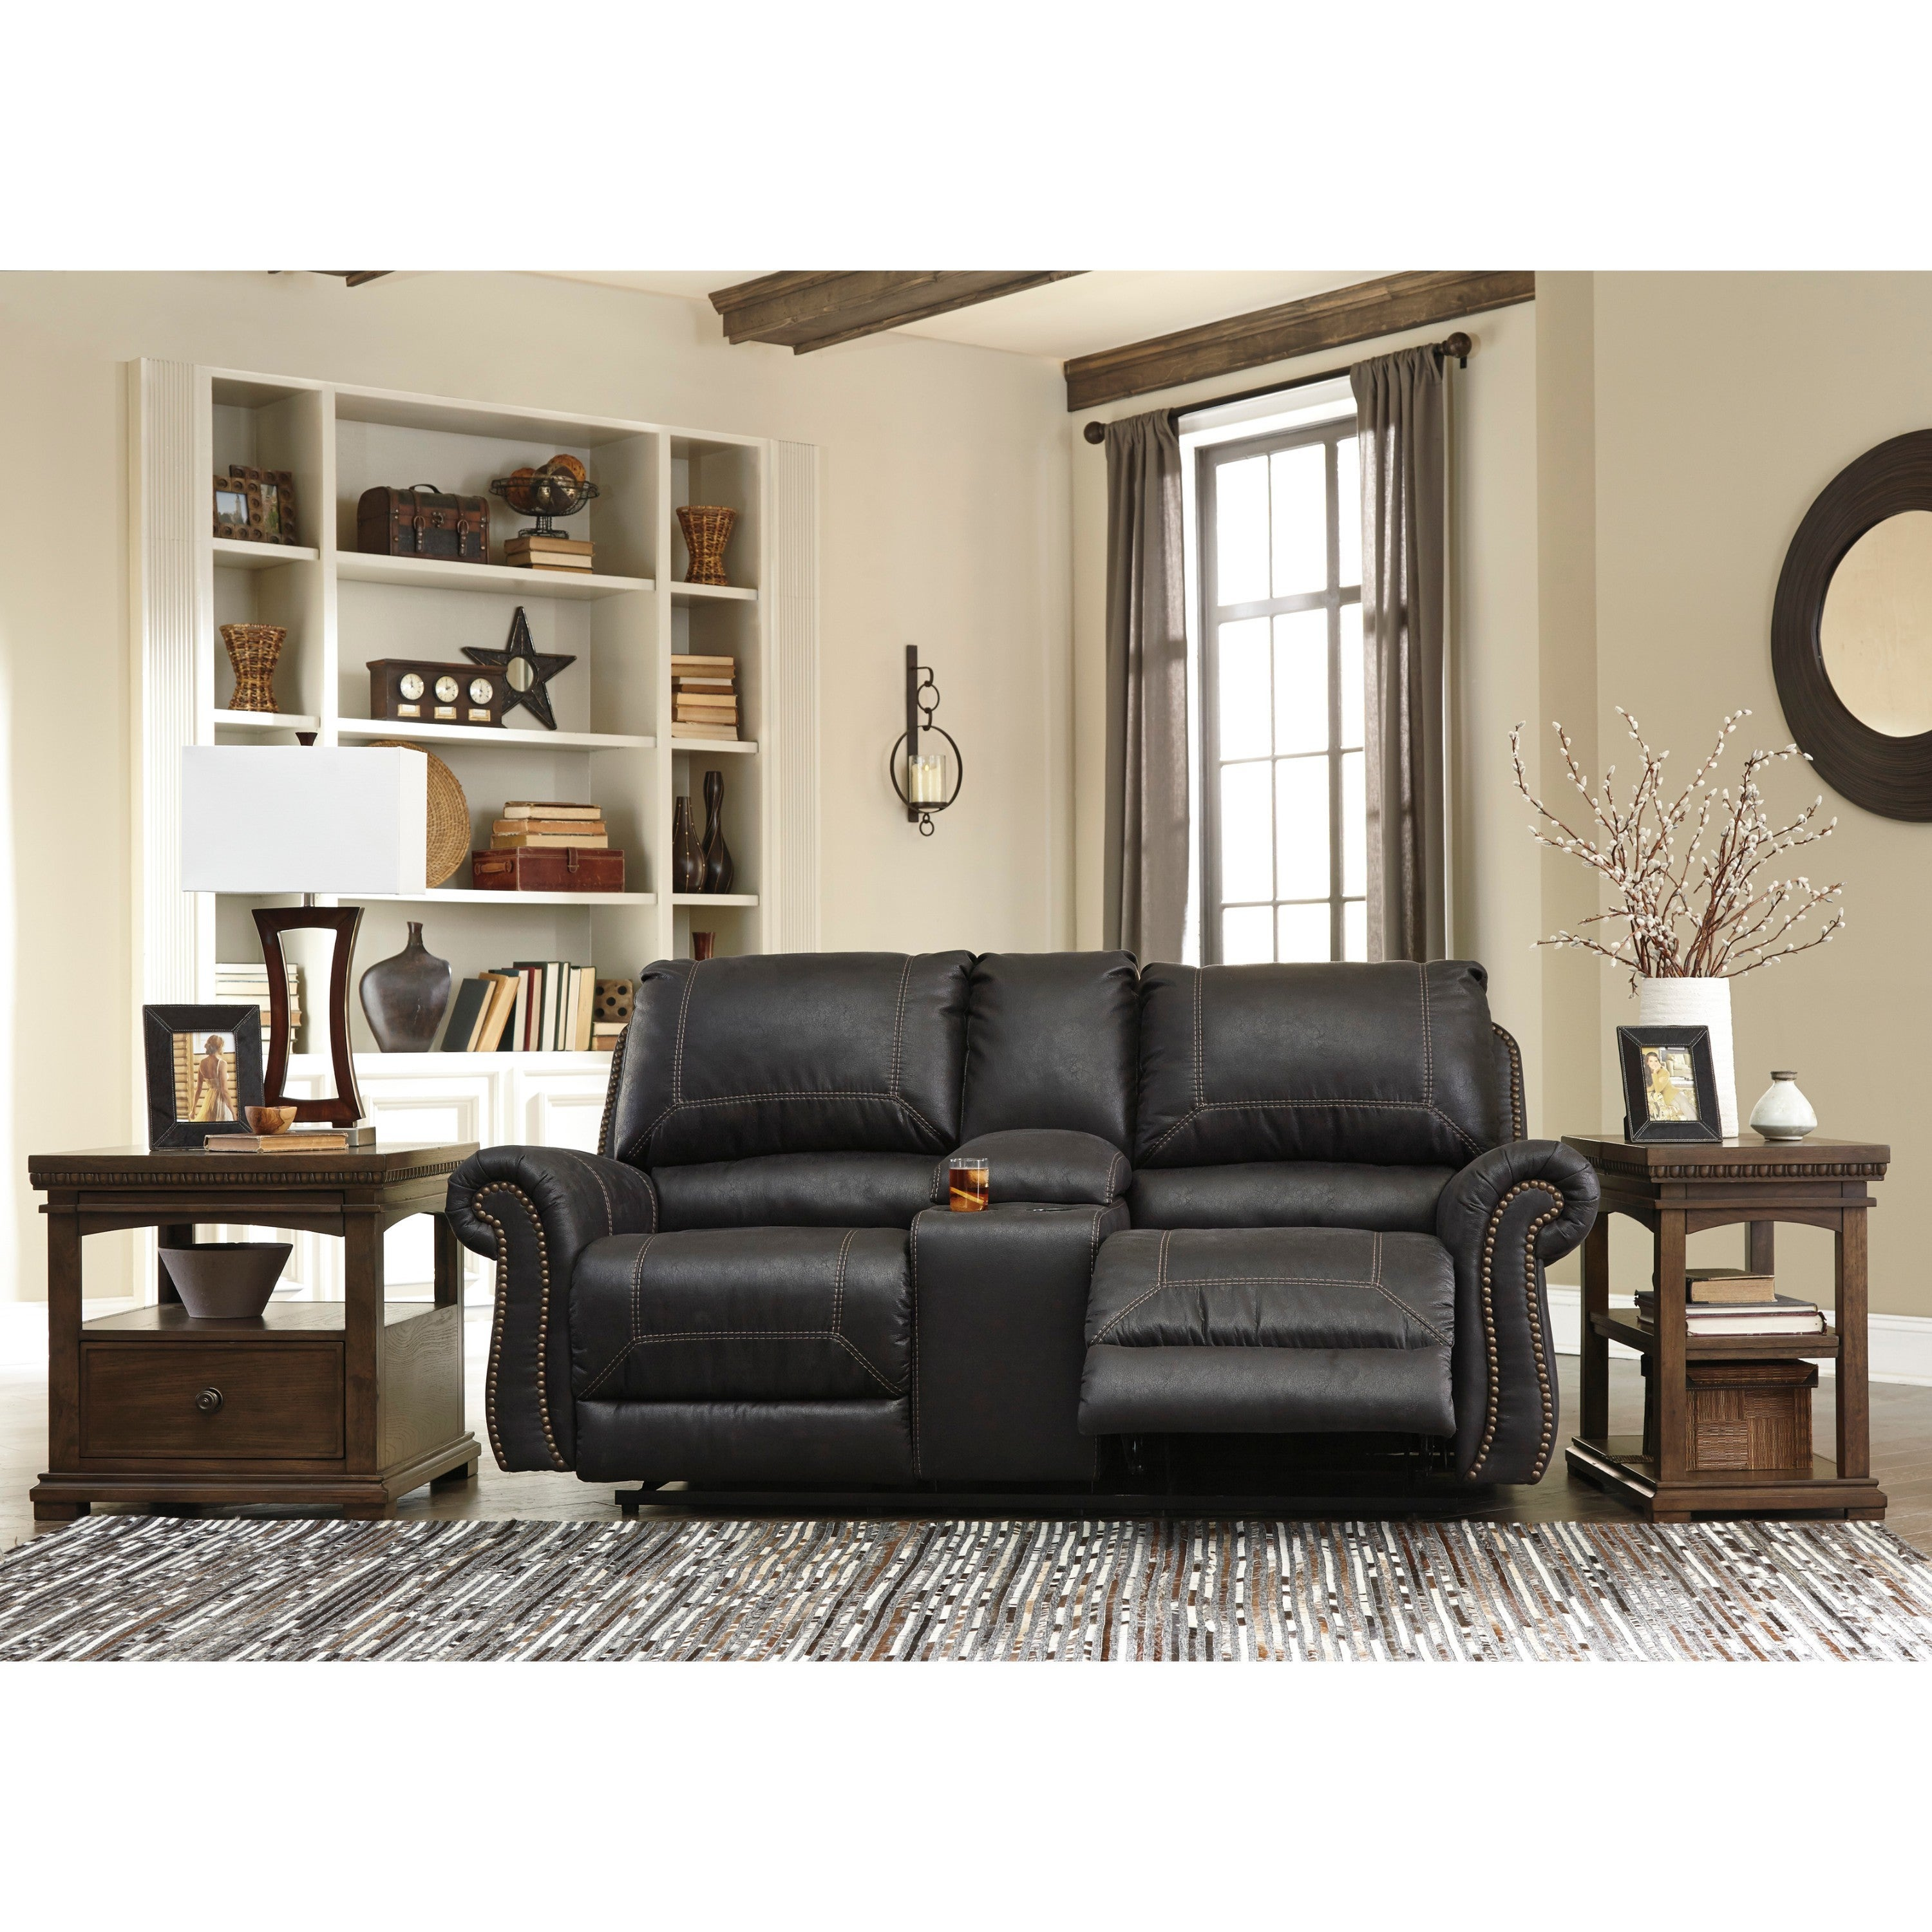 netto rocker sofas sofa love ashley your loveseat family american casual covers faux brown reviews living room seating recliners reclining tufted sale in costco lov cheers klippan cover for couch furniture oversized sleeper black clayton used leather and office recliner loveseats